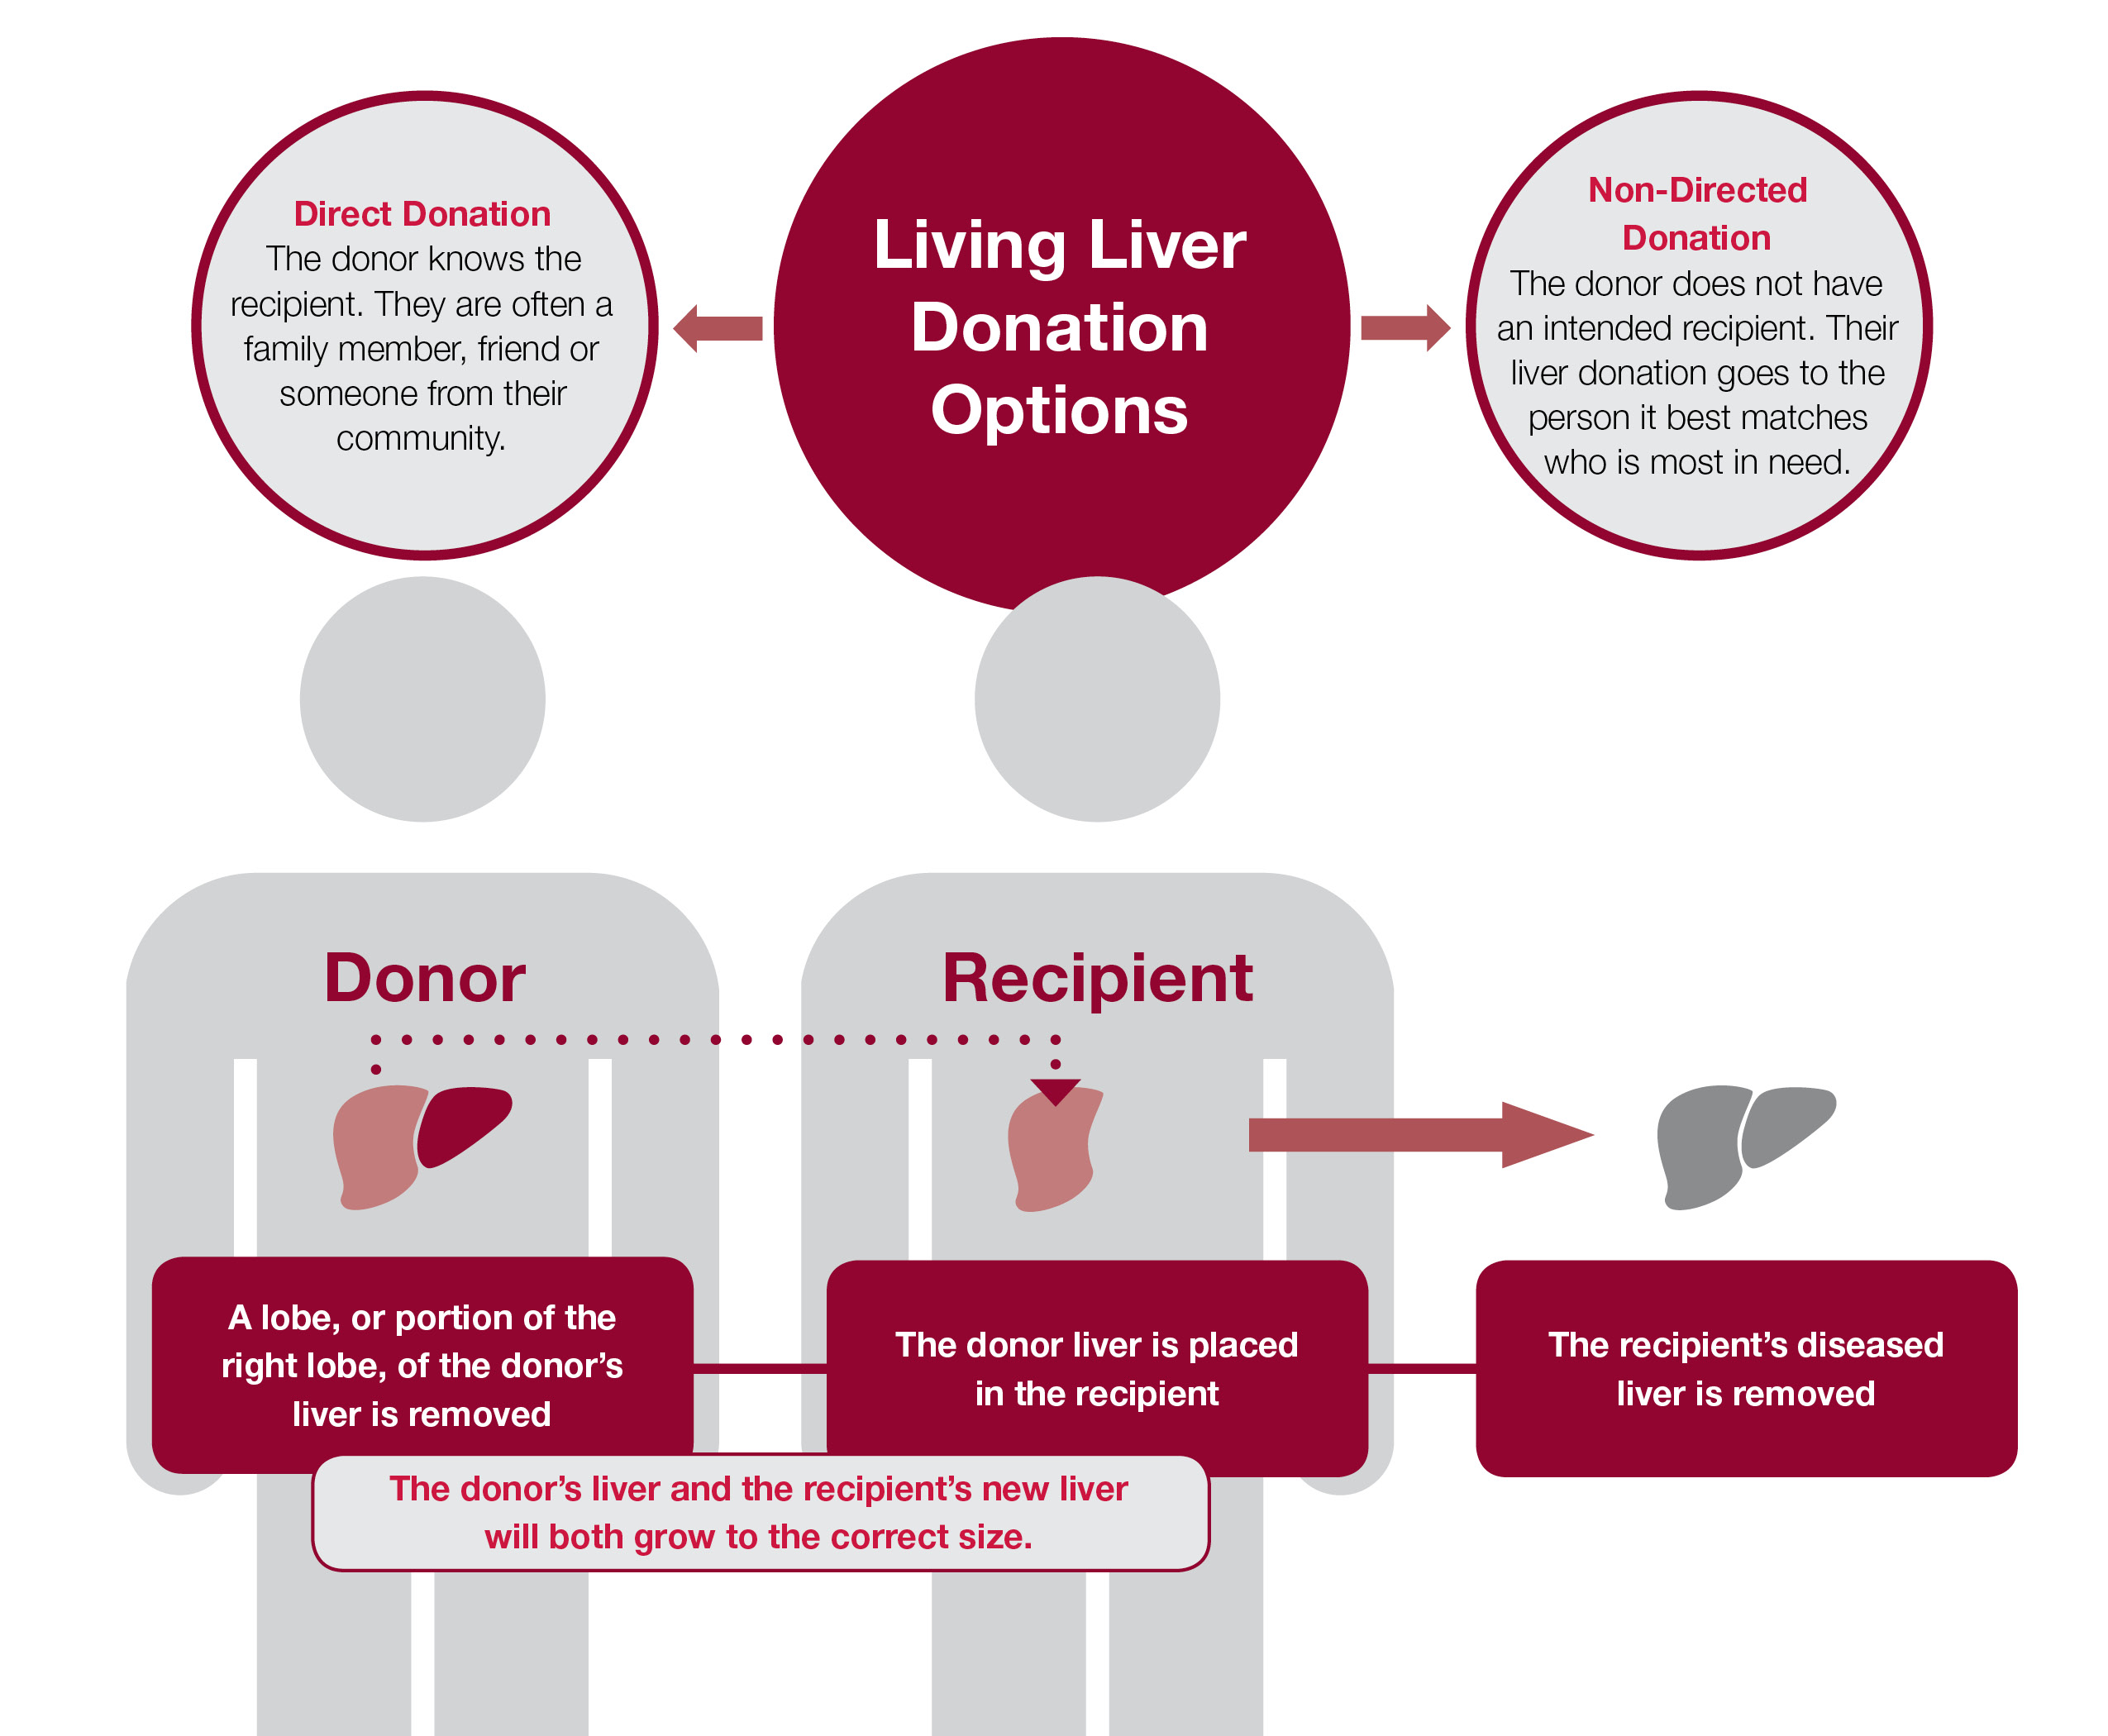 Living Liver Donation Options